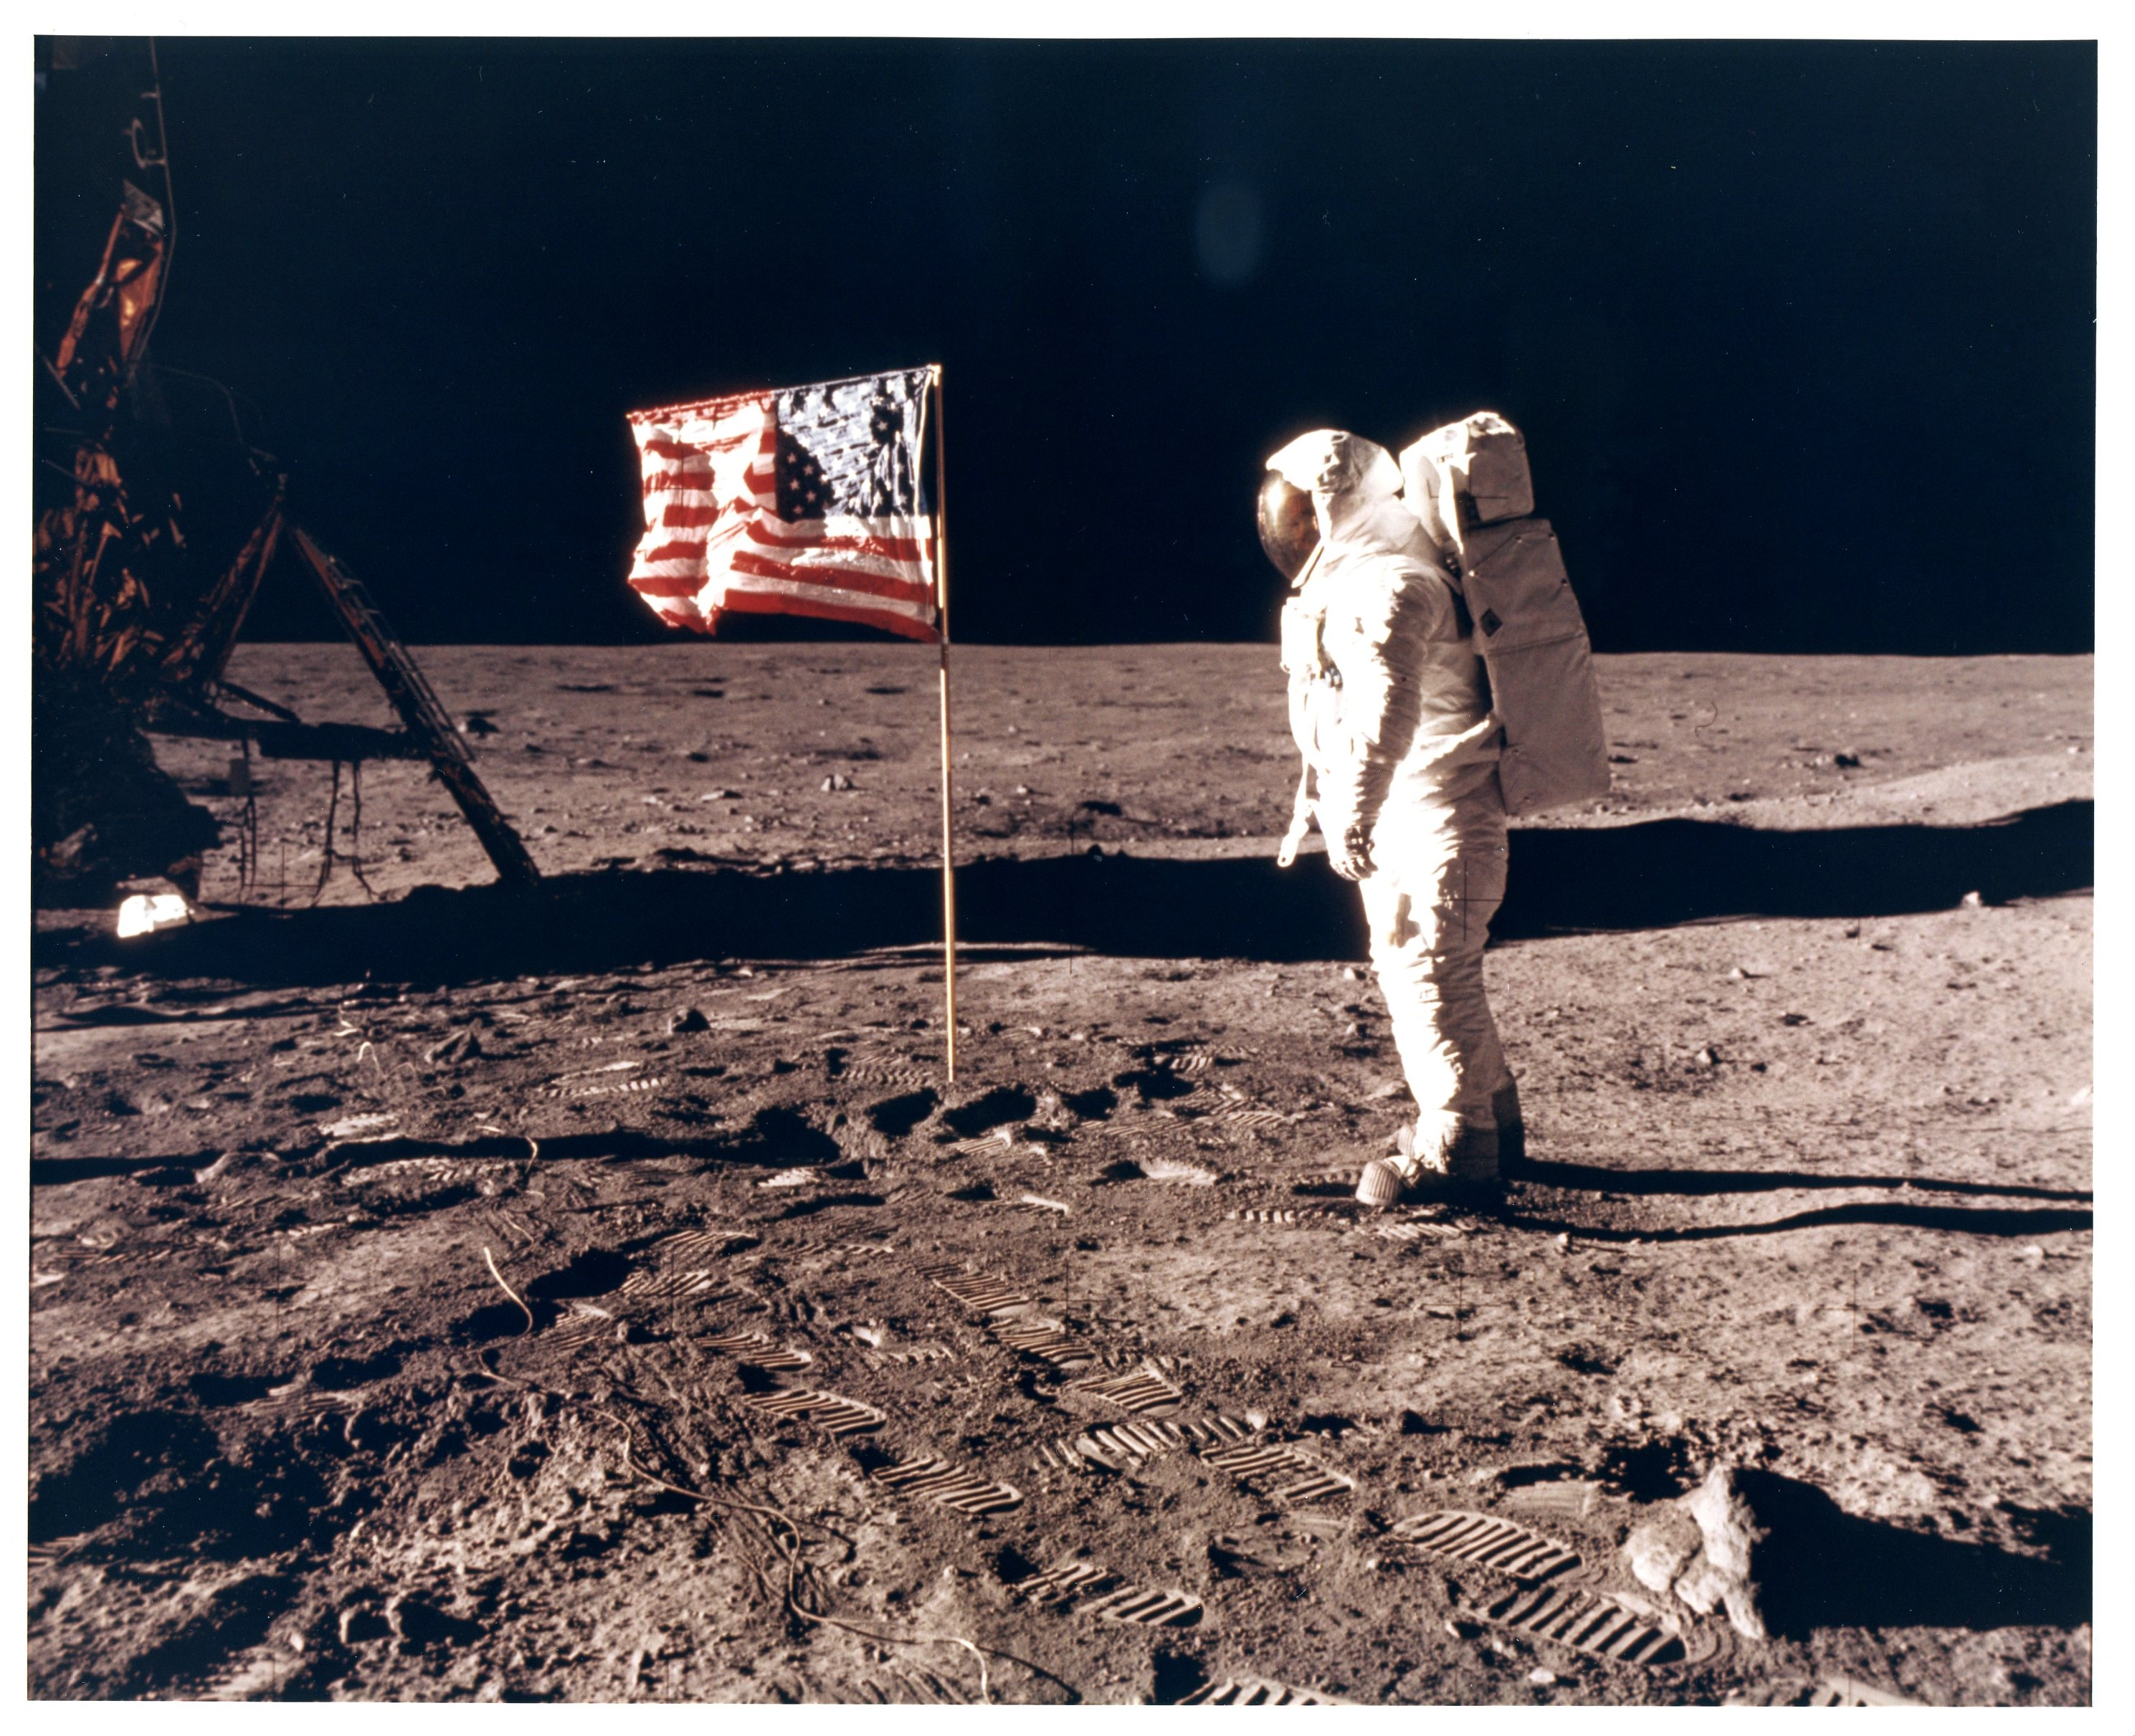 Apollo 11, Buzz Aldrin with the flag of the United States (AS11-40-5880), 1969